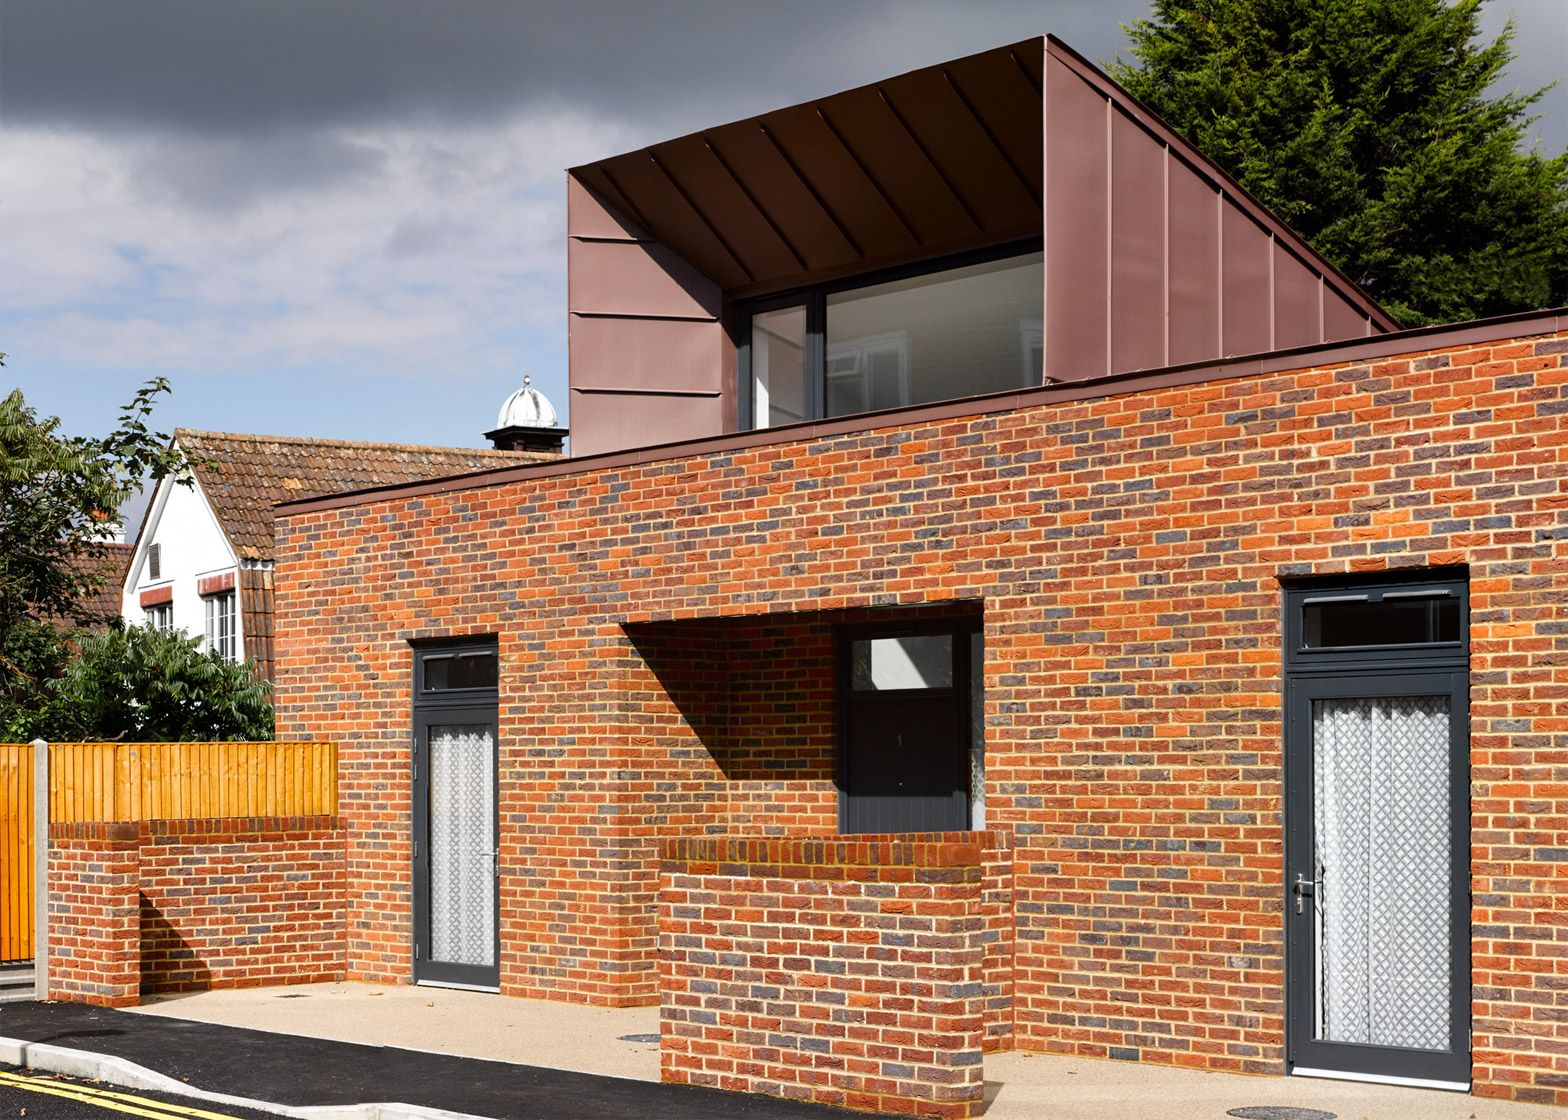 Ravens Way Housing By Bell Phillips Architects Roof Cost Architecture House Brick